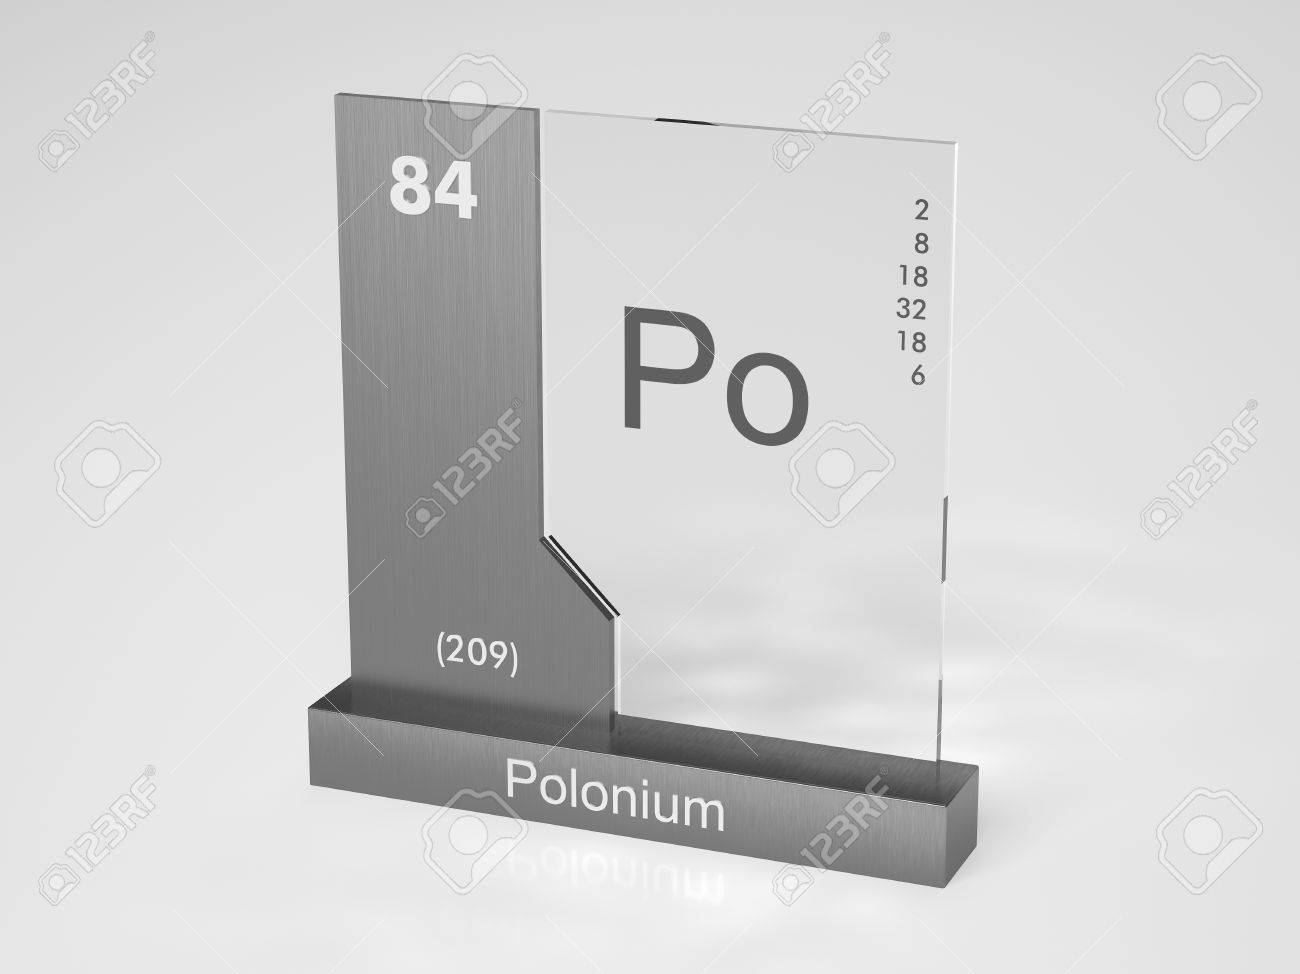 Periodic table polonium choice image periodic table images pete mckee periodic table gallery periodic table images po element periodic table choice image periodic table gamestrikefo Gallery